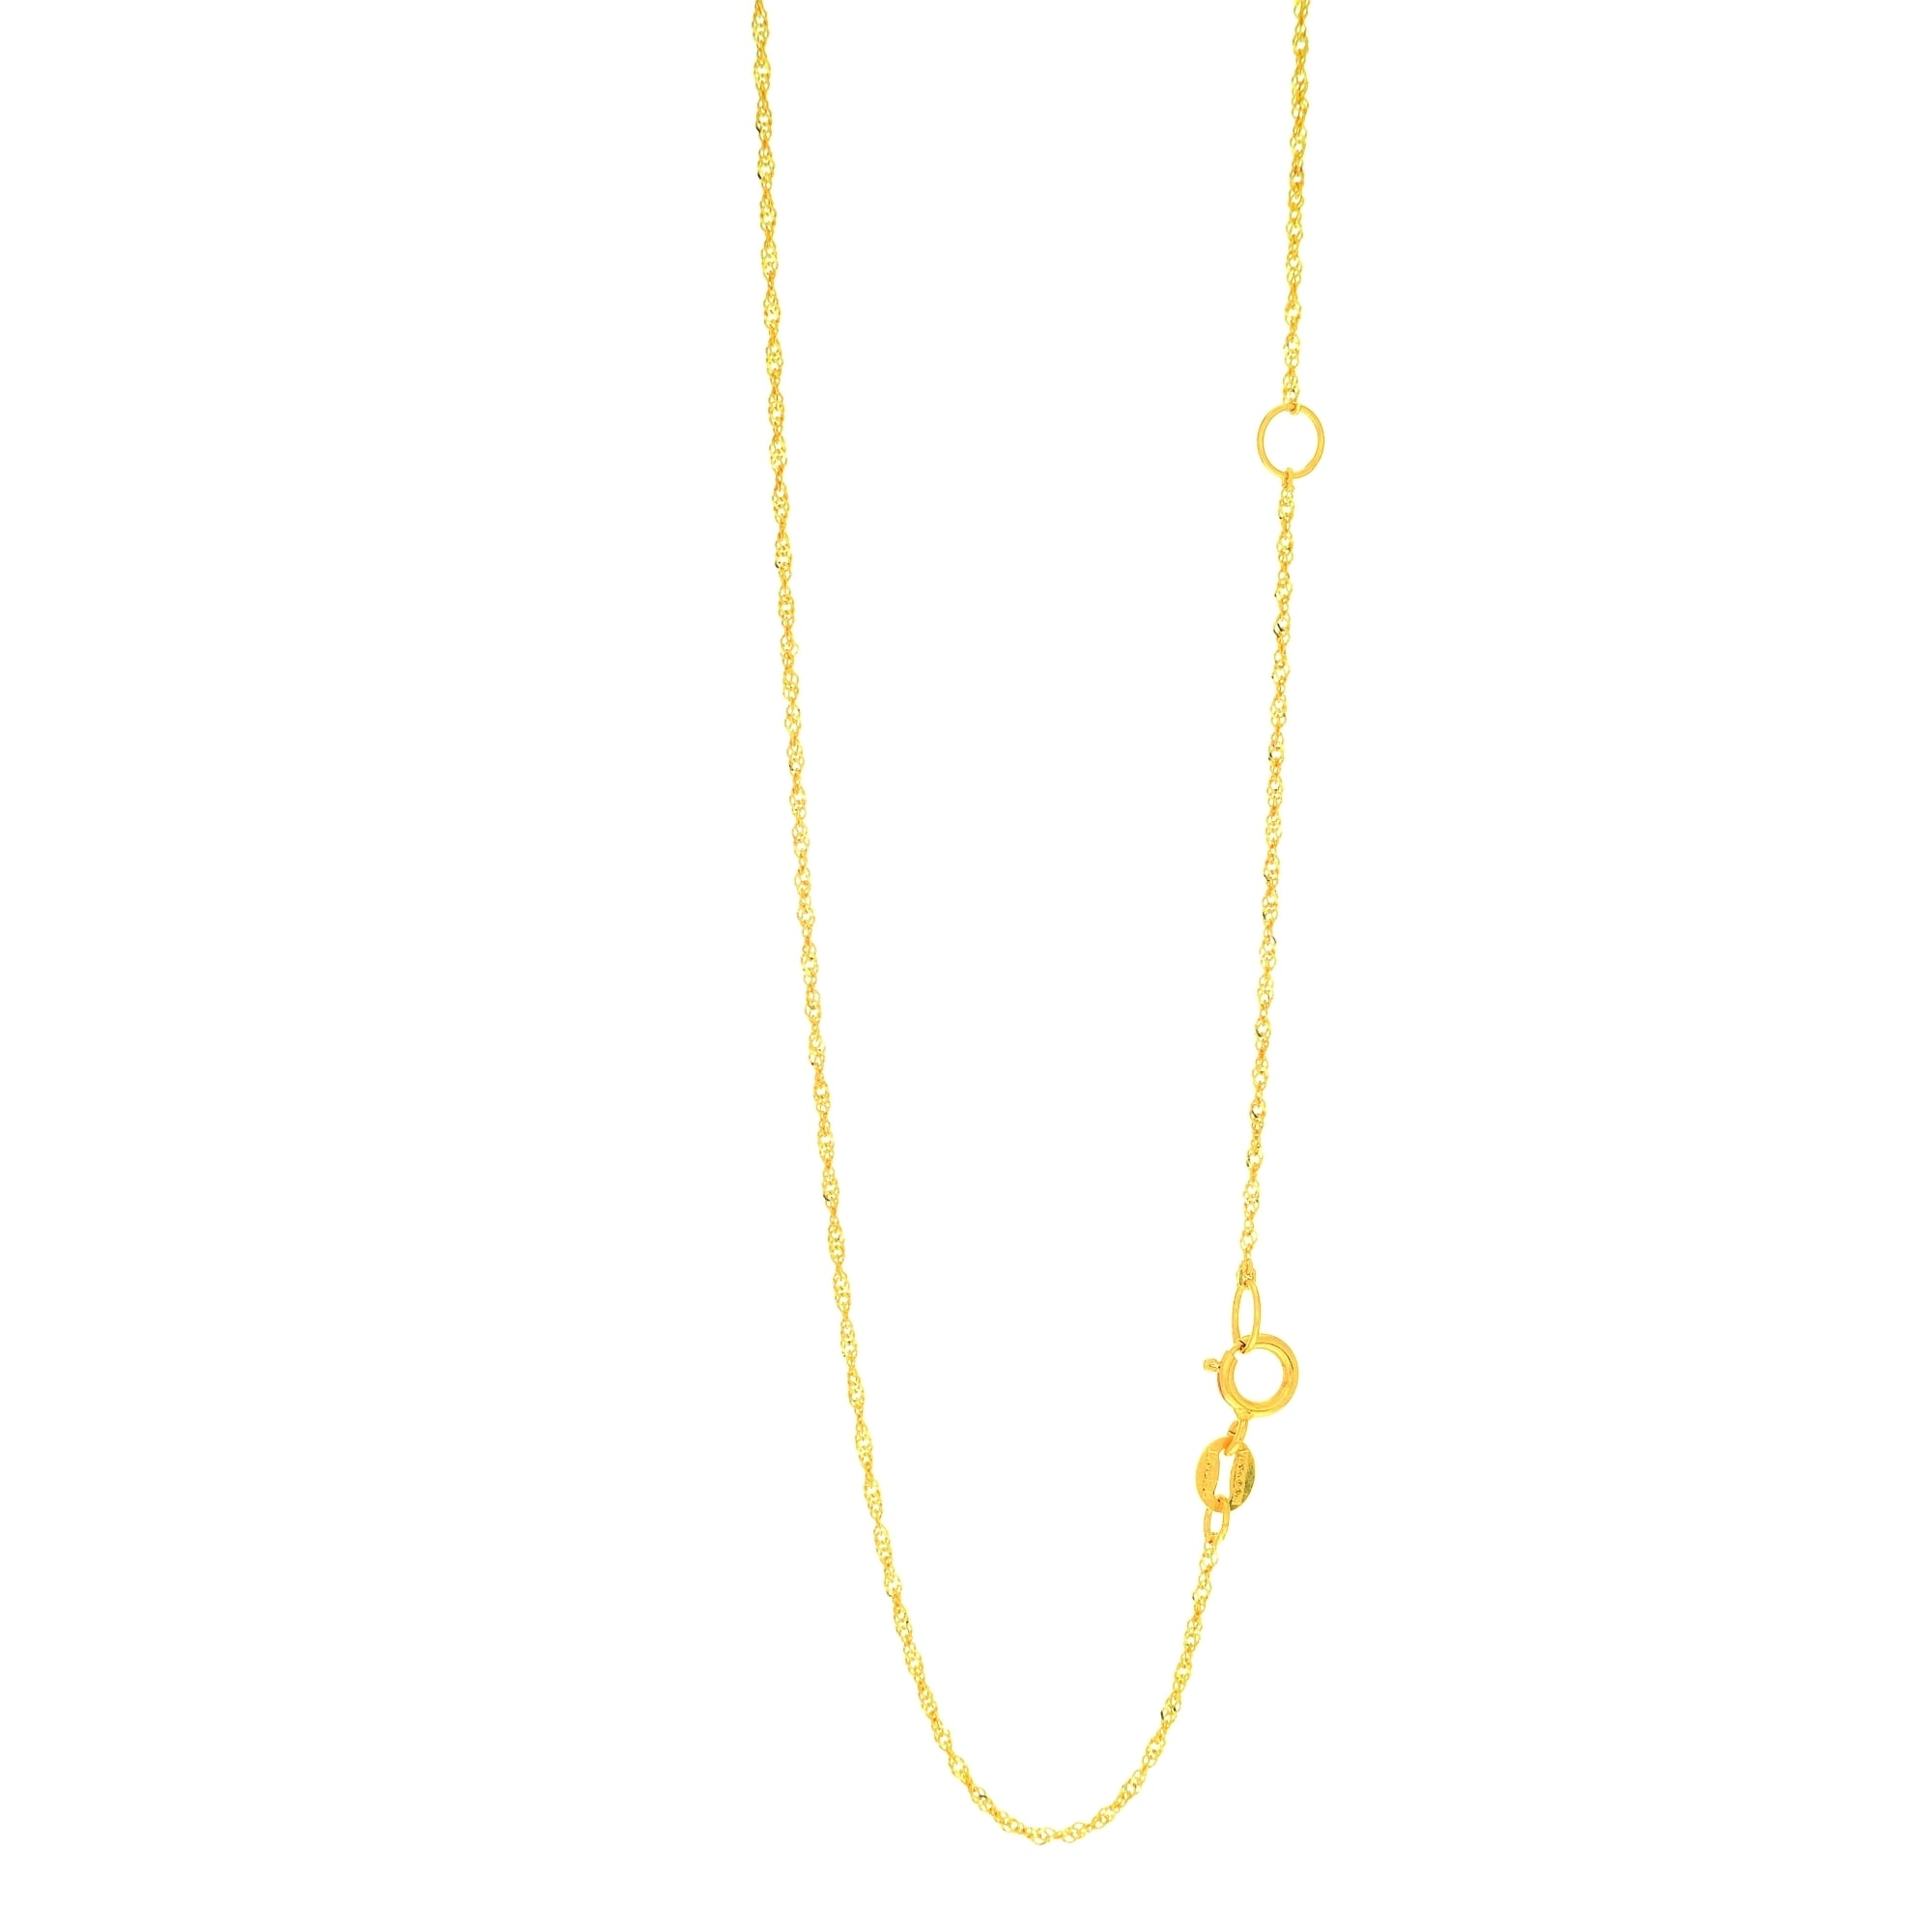 24 inch 14k Yellow Gold 1mm Singapore Chain Necklace 16 inch